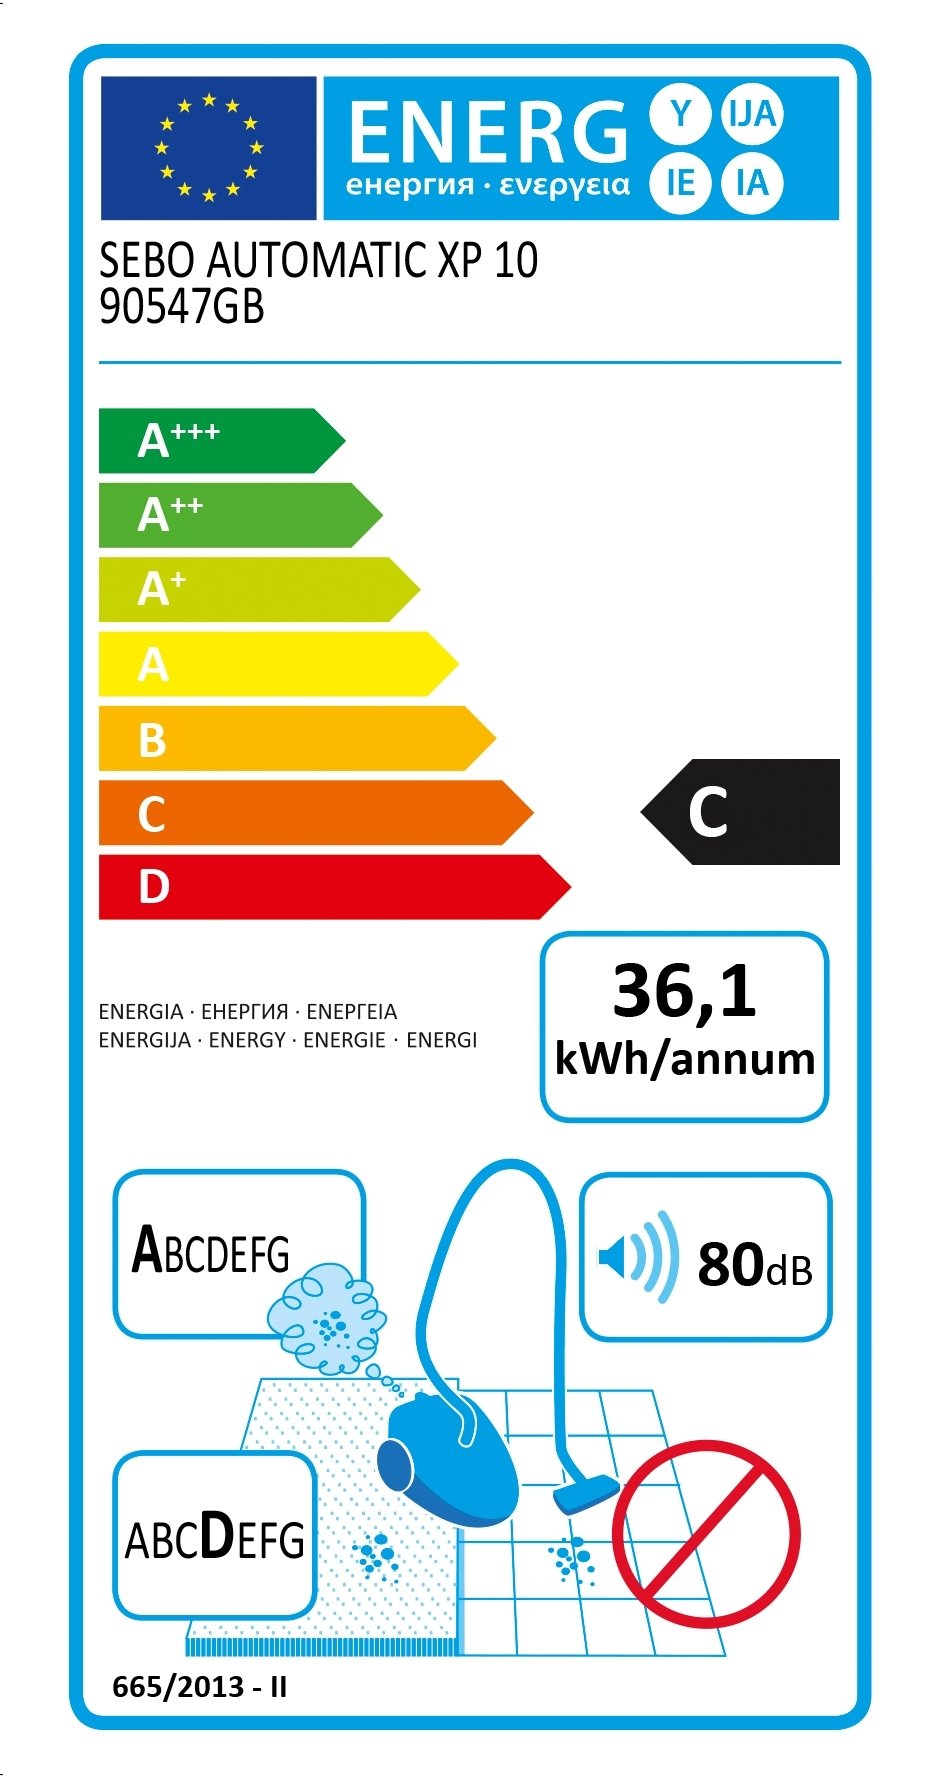 Image of energy label for SEBO XP10